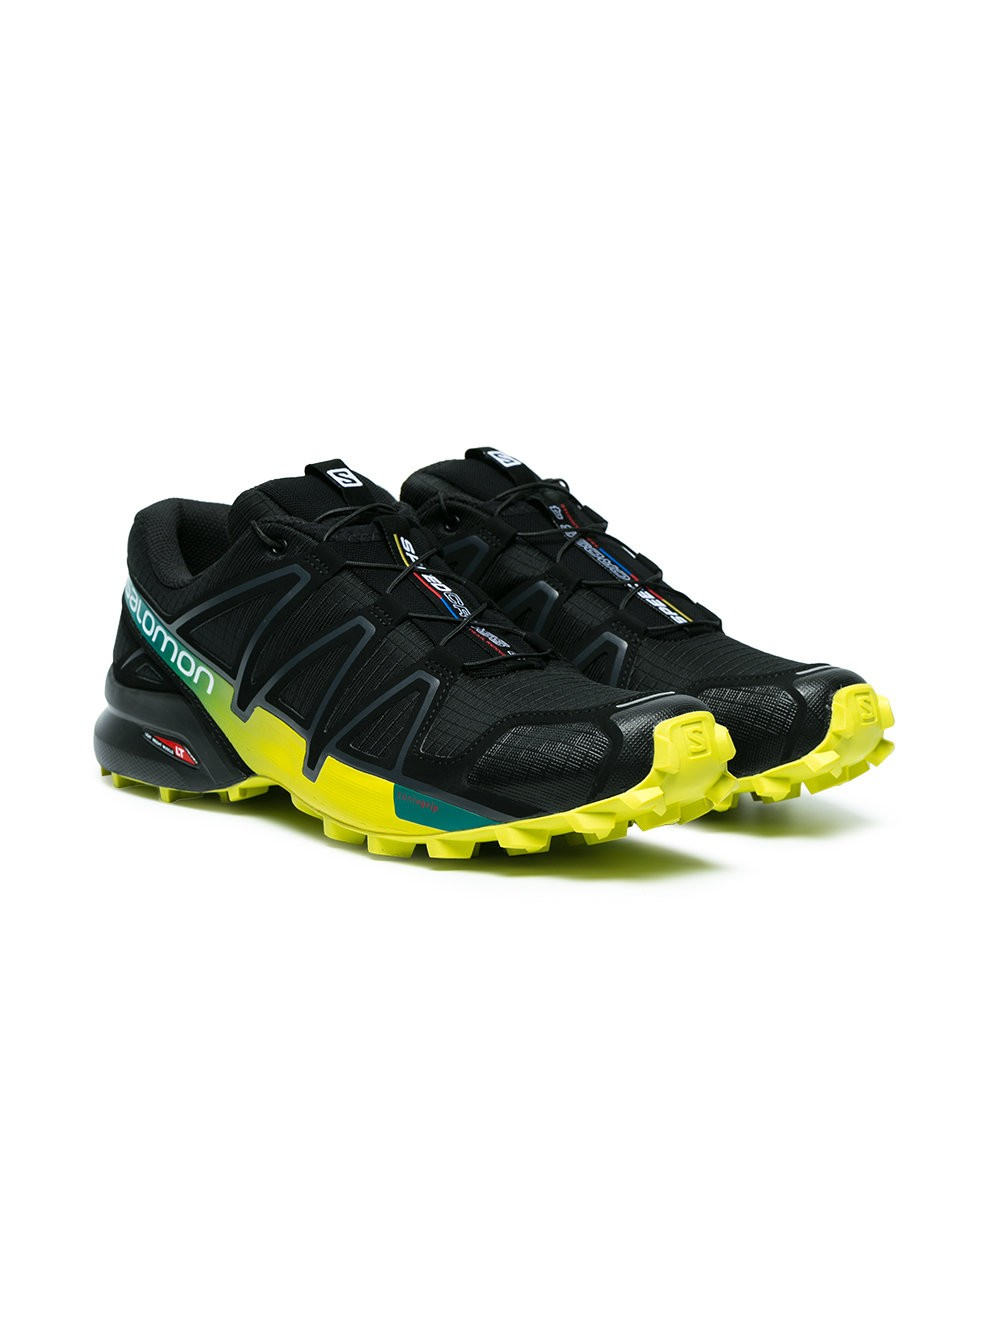 Zapatillas Speedcross de Salomon S/Lab